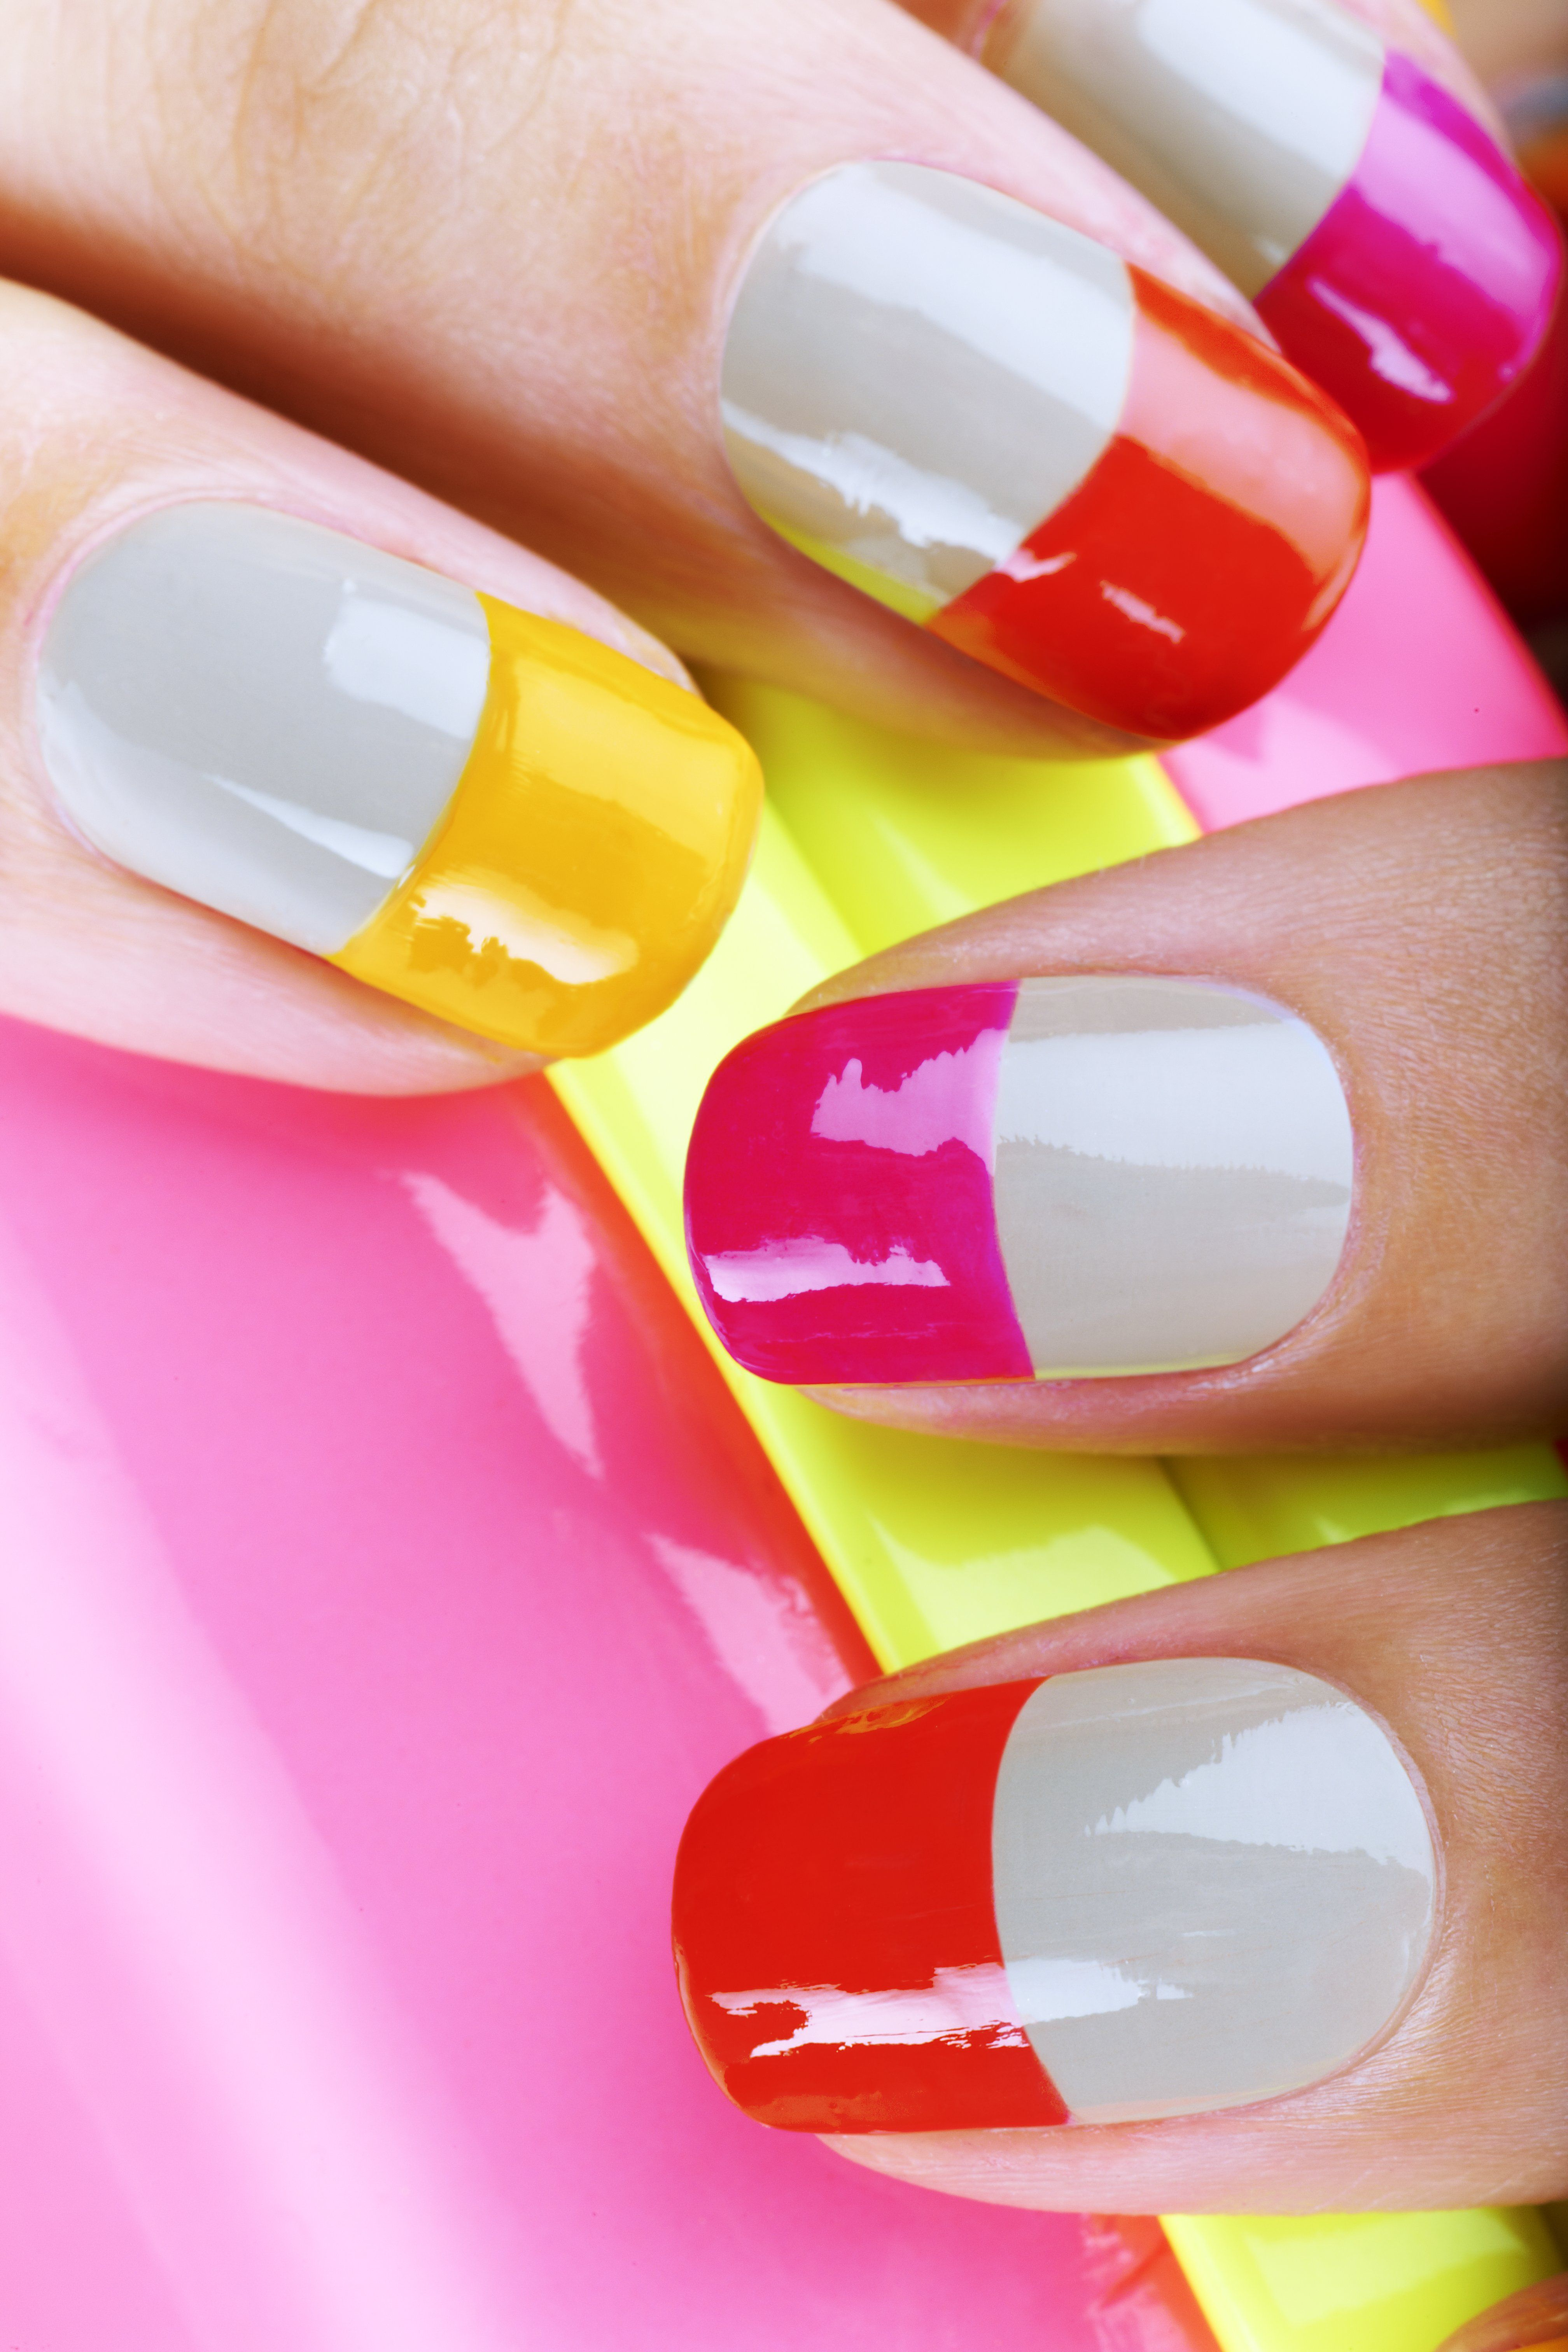 10 Best Neon Nail Polishes (And Reviews) - 2018 Update | Neon, Nude ...